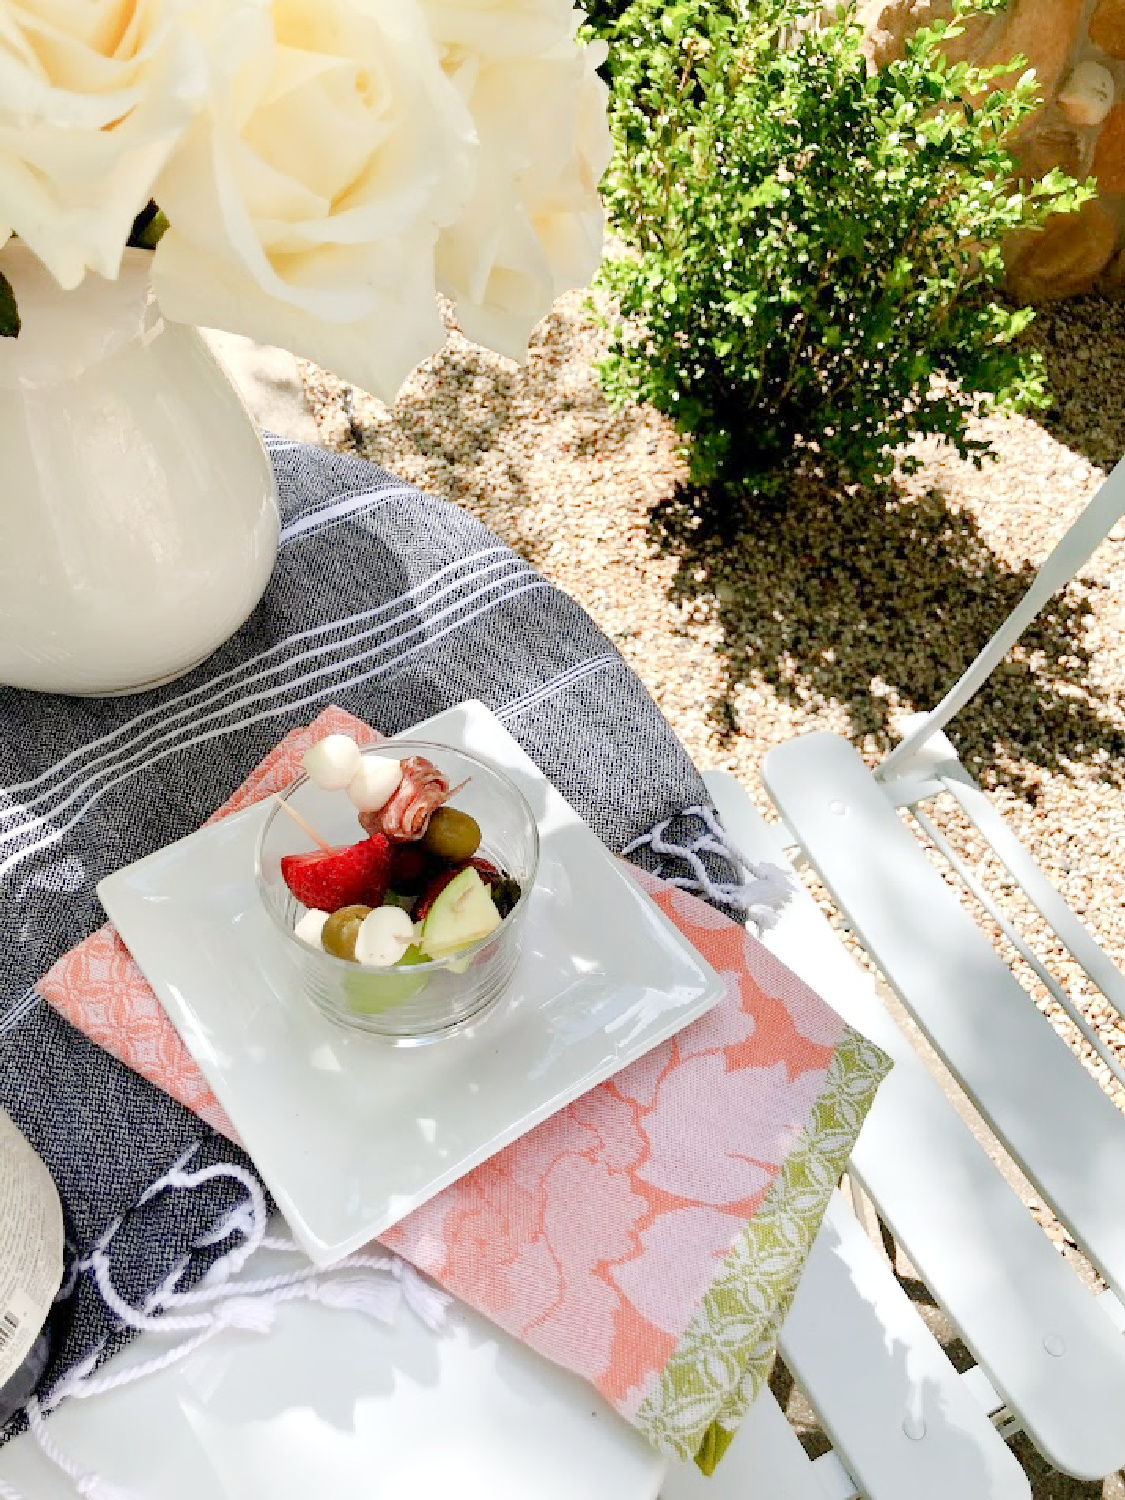 Jarcuterie is served on a charming French cafe dining table in the garden - Hello Lovely Studio. #jarcuterie #frenchpicnic #frenchaesthetic #outdoordining